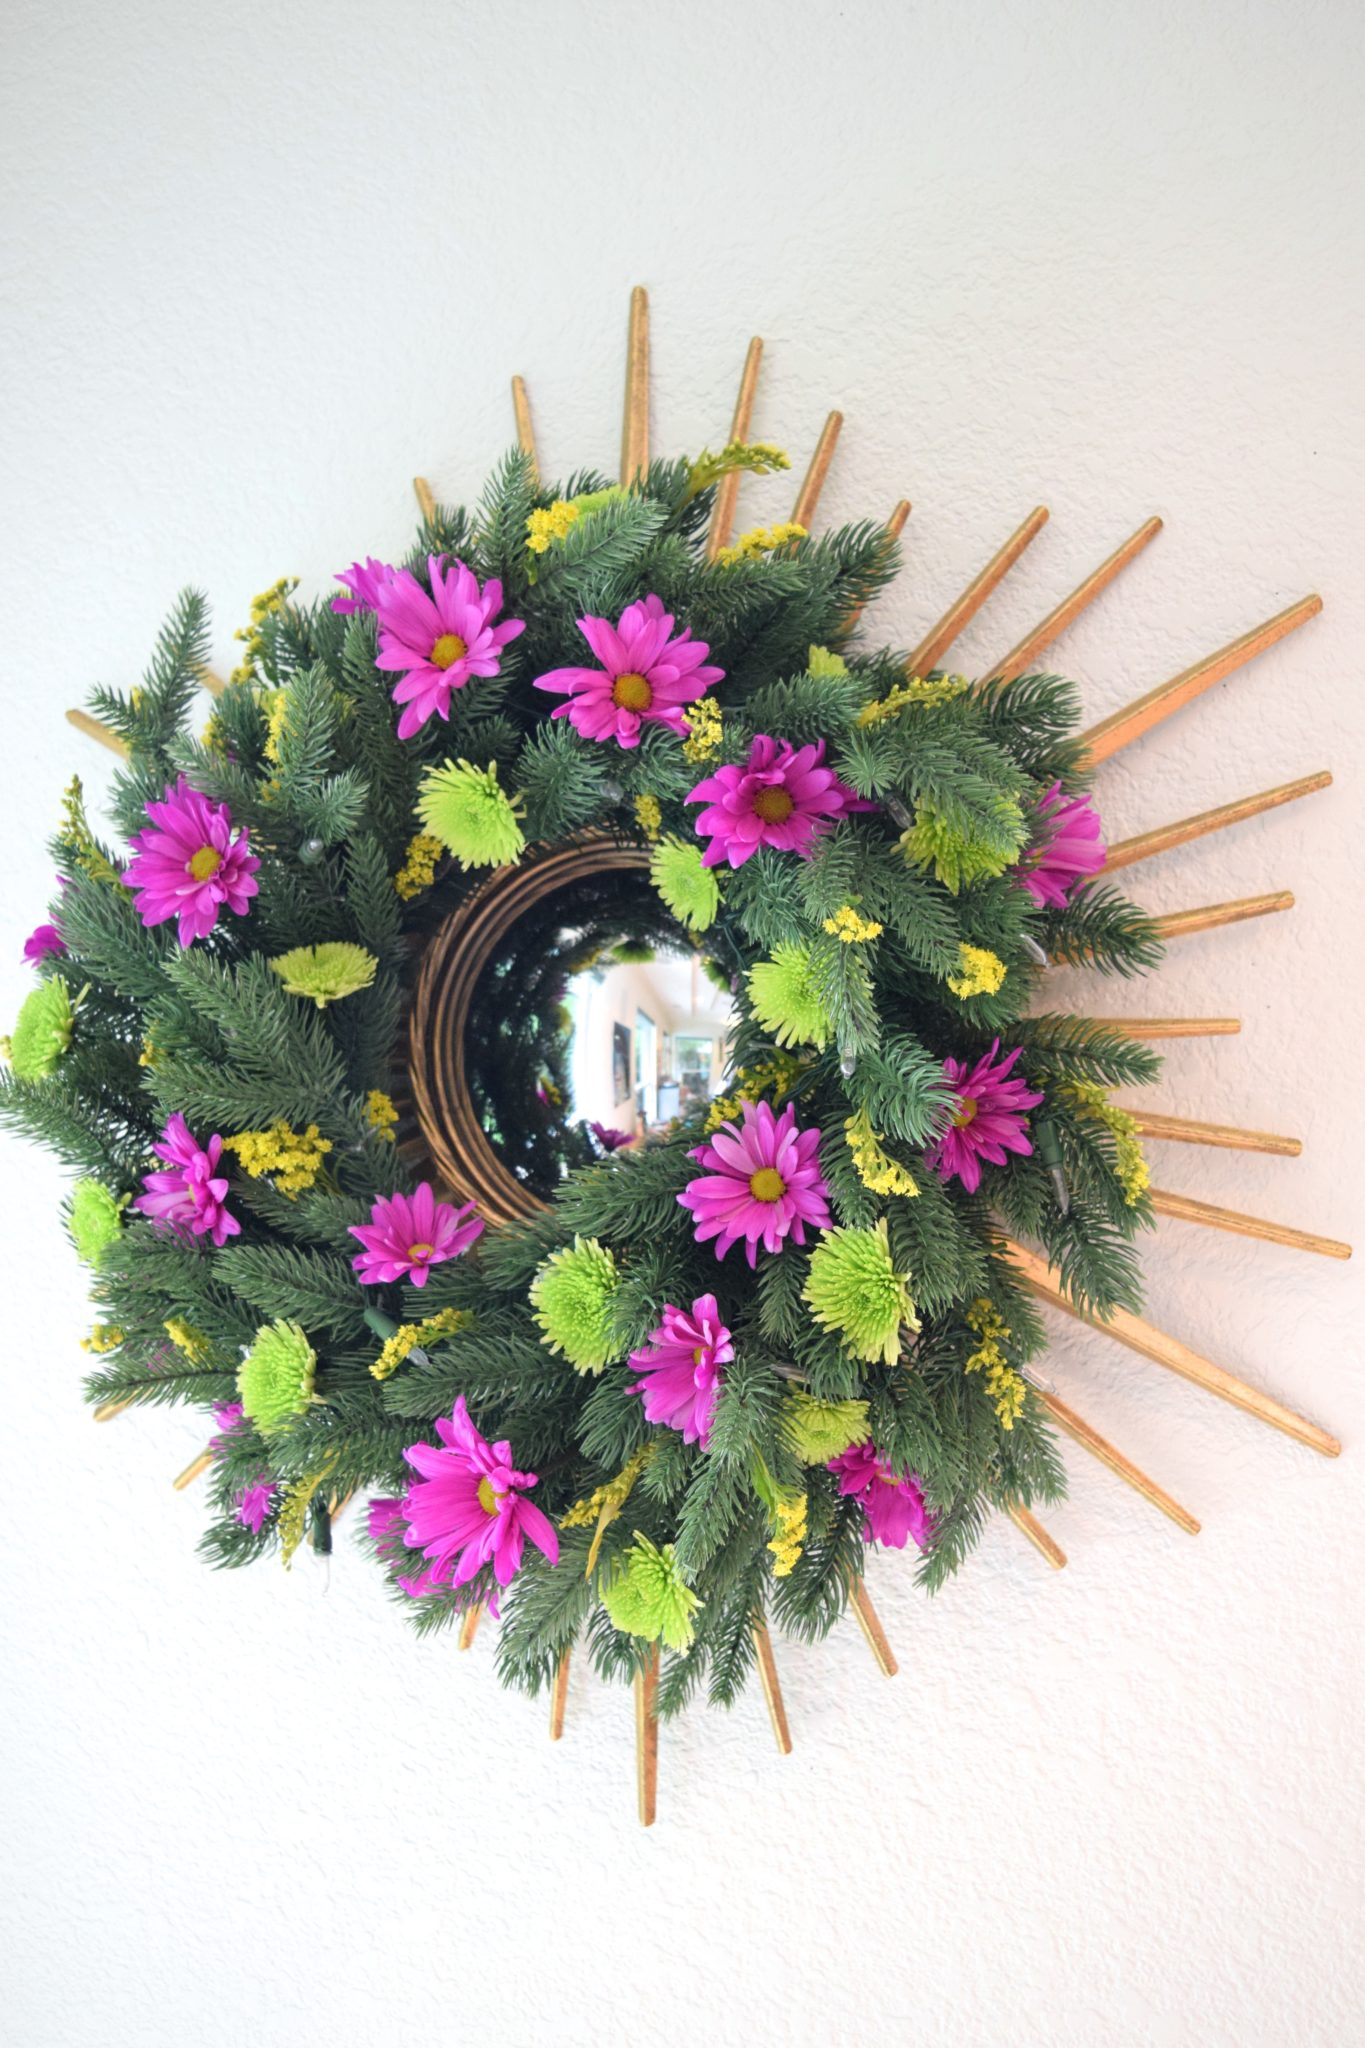 DIY wreath with living flowers.